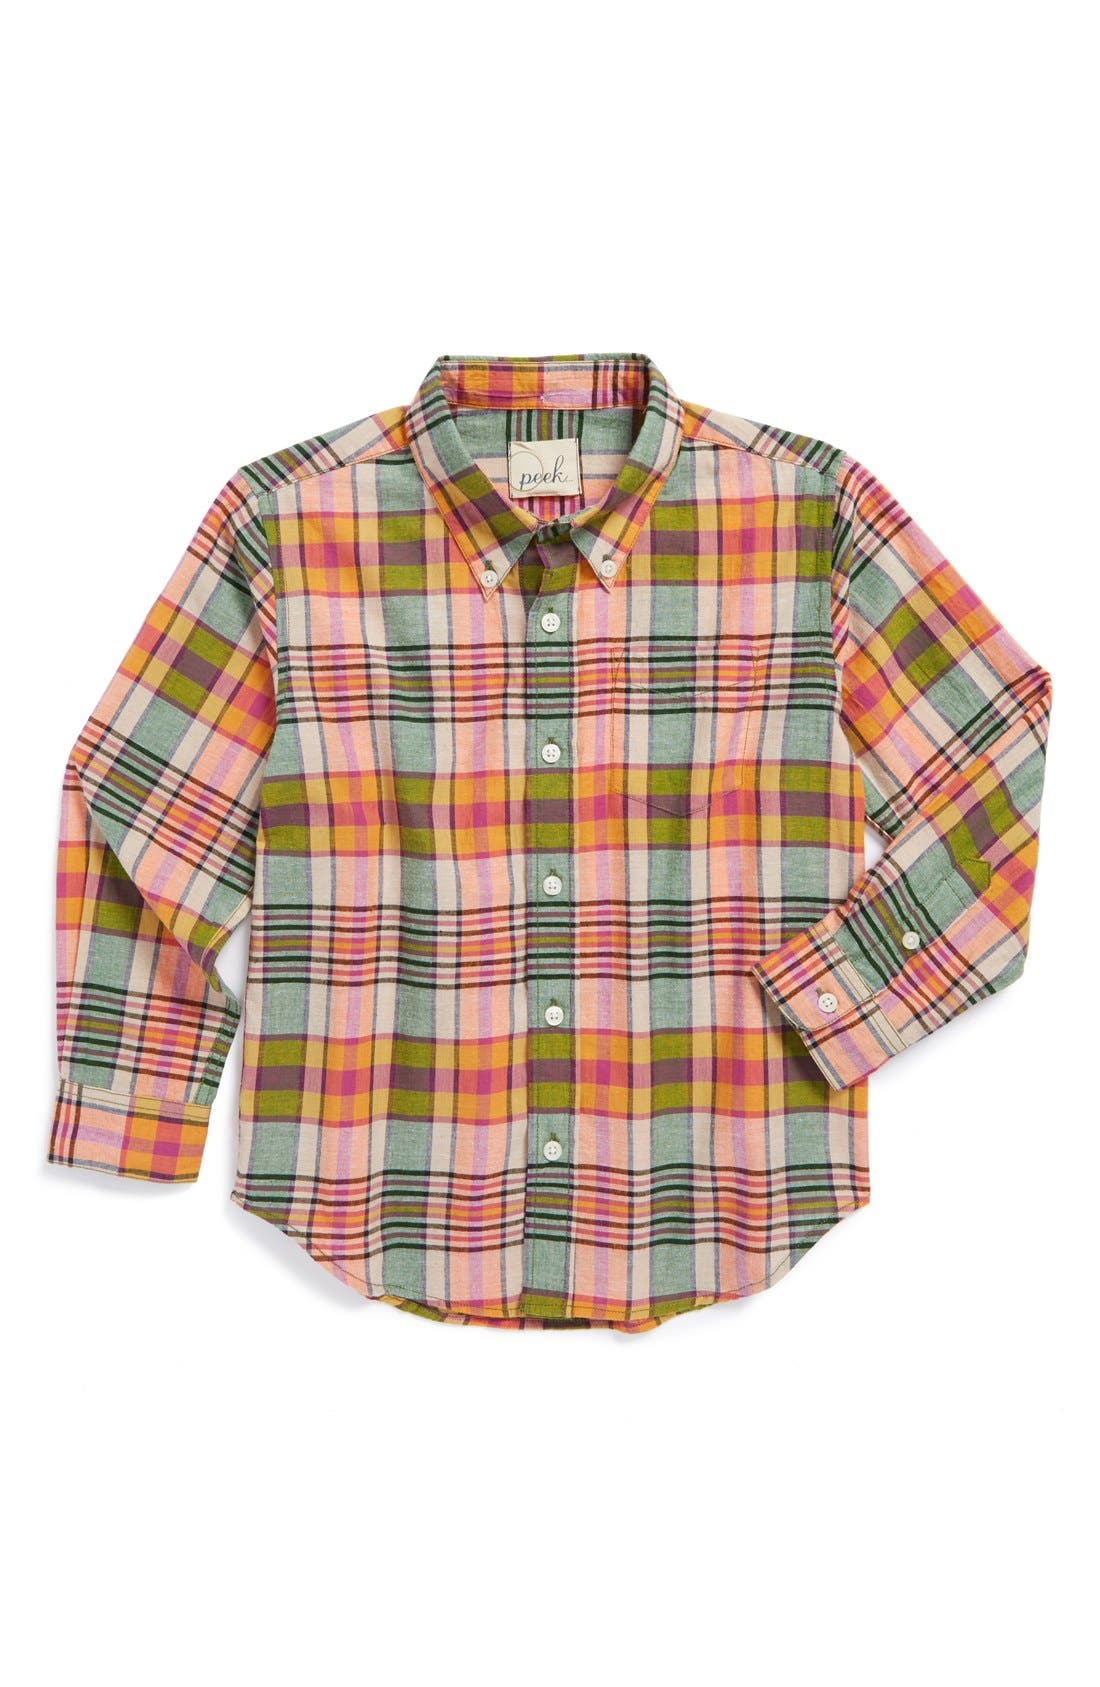 Main Image - Peek 'Catamaran Bright' Woven Plaid Button Down Shirt (Toddler Boys, Little Boys & Big Boys)